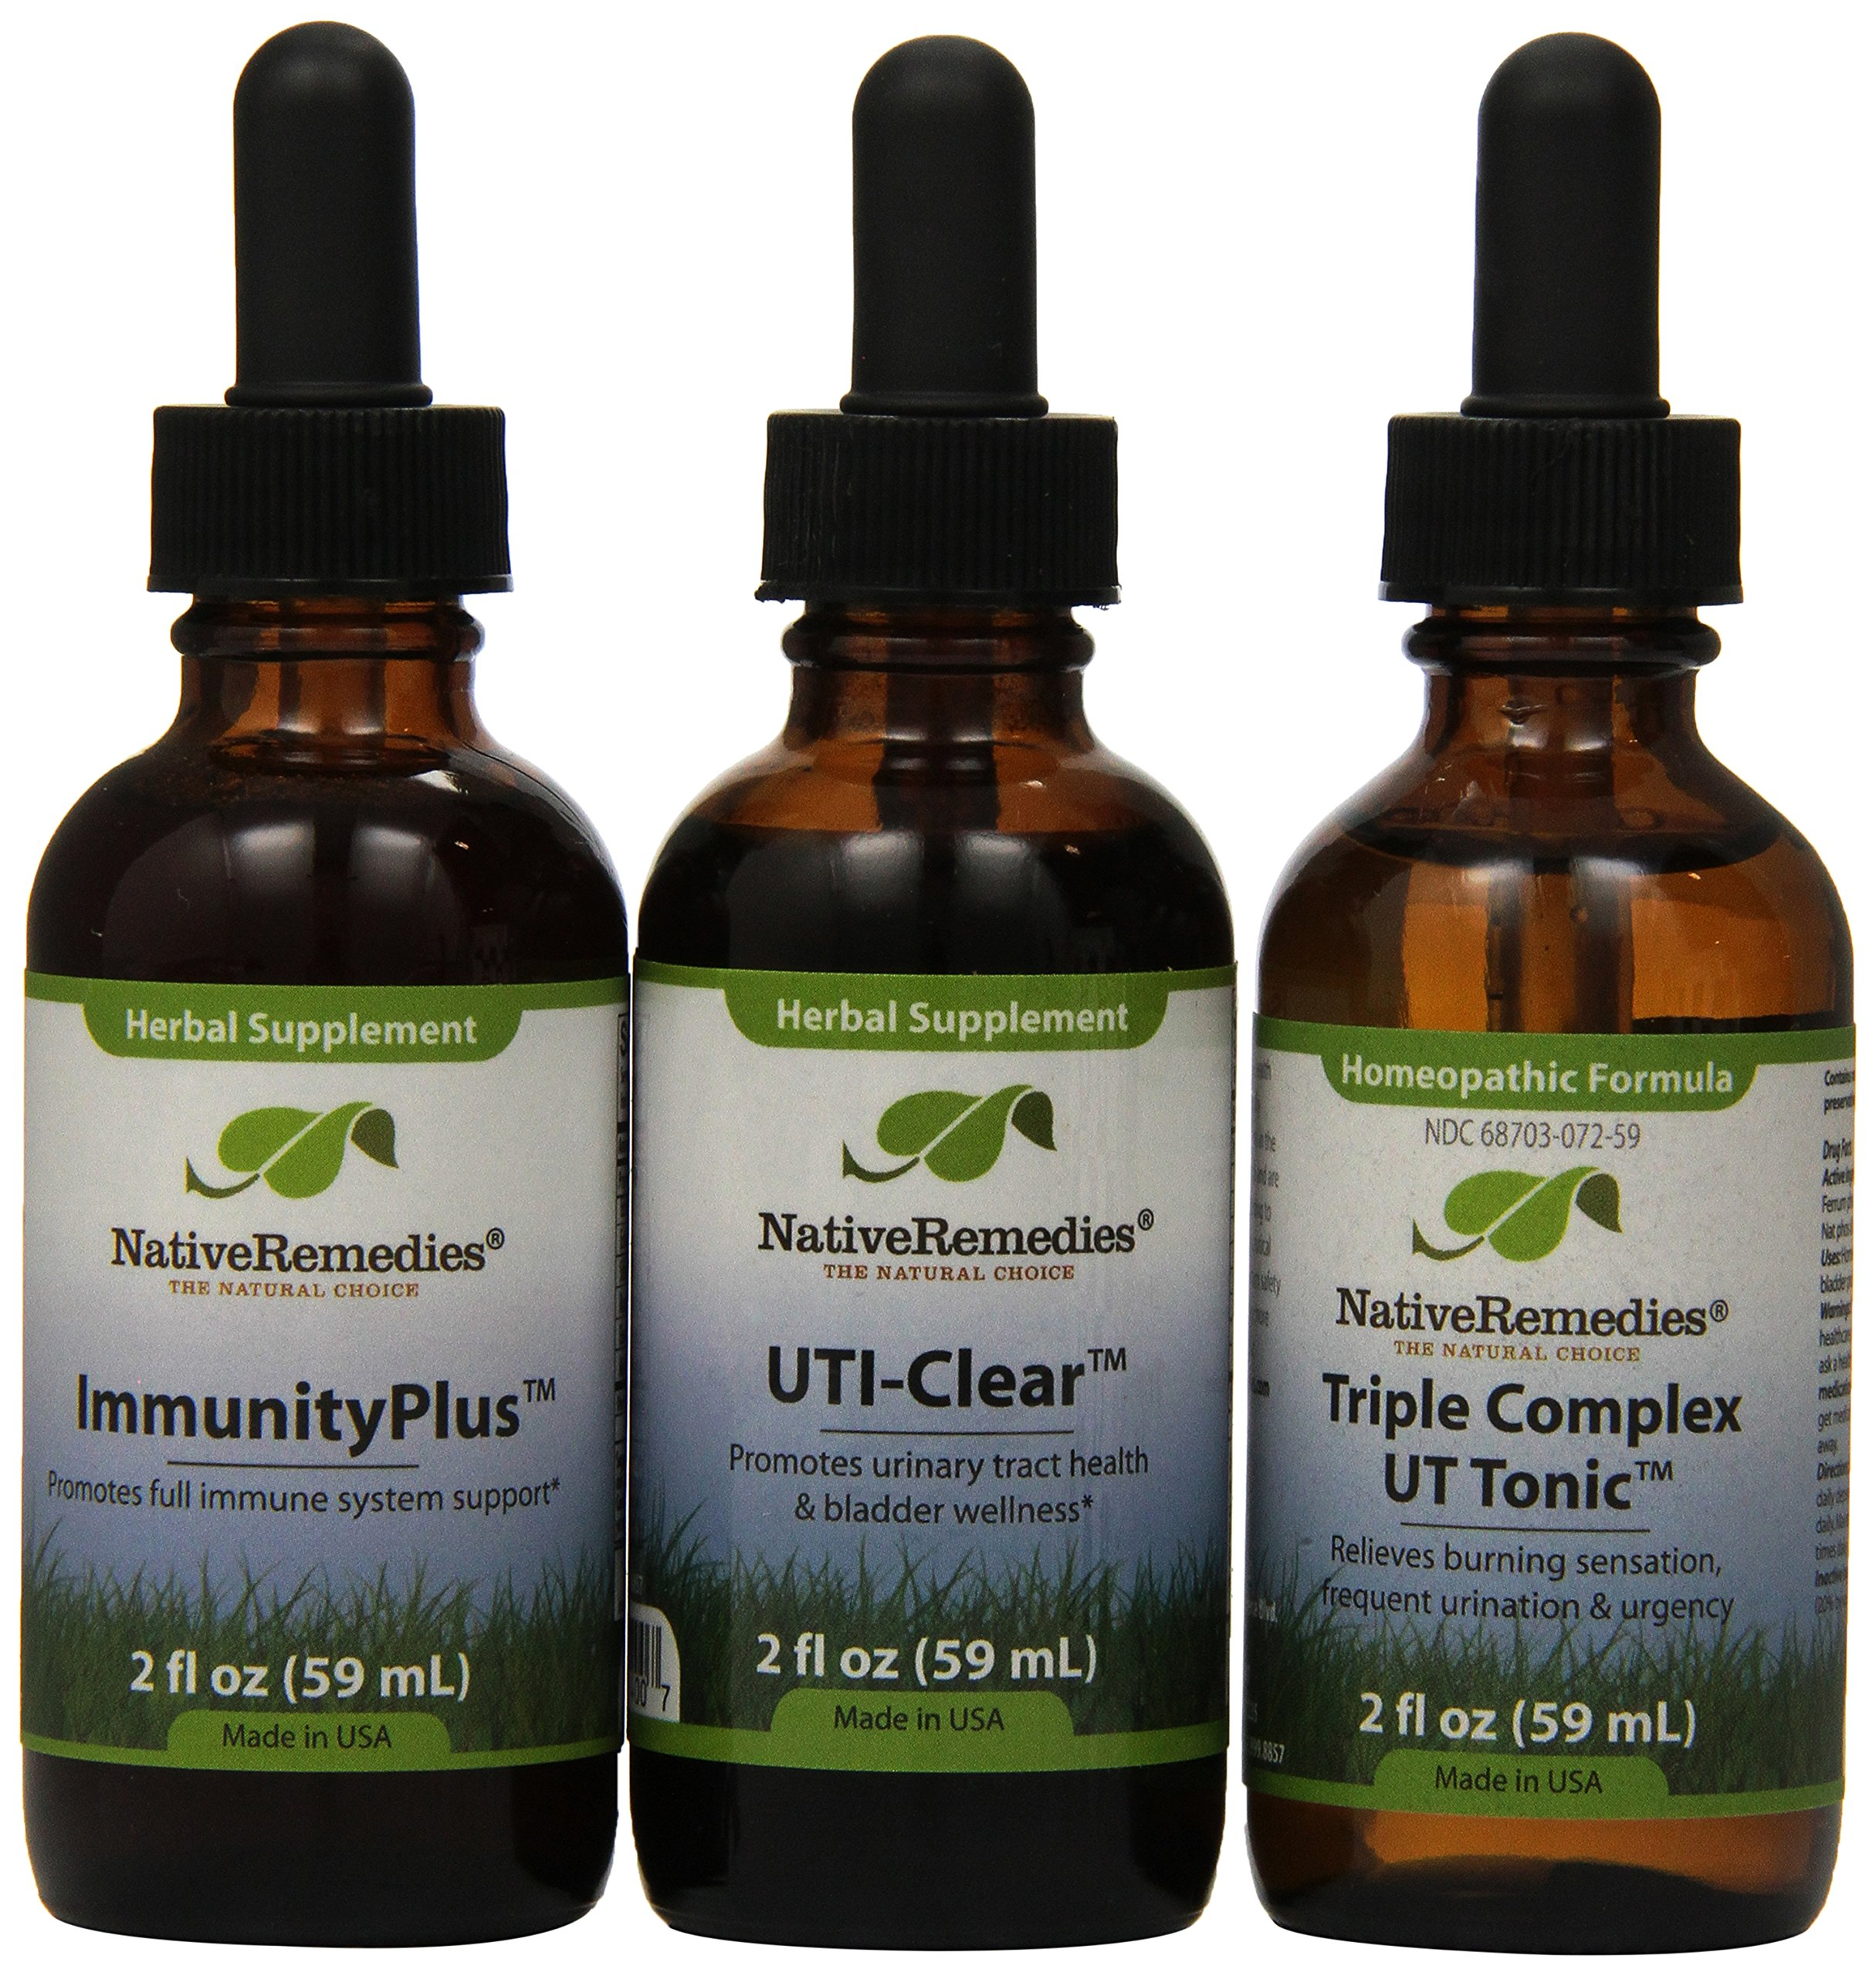 Native Remedies Immunity Plus, UTI-Clear and Triple Complex UT-Tonic 2 fl oz (each)